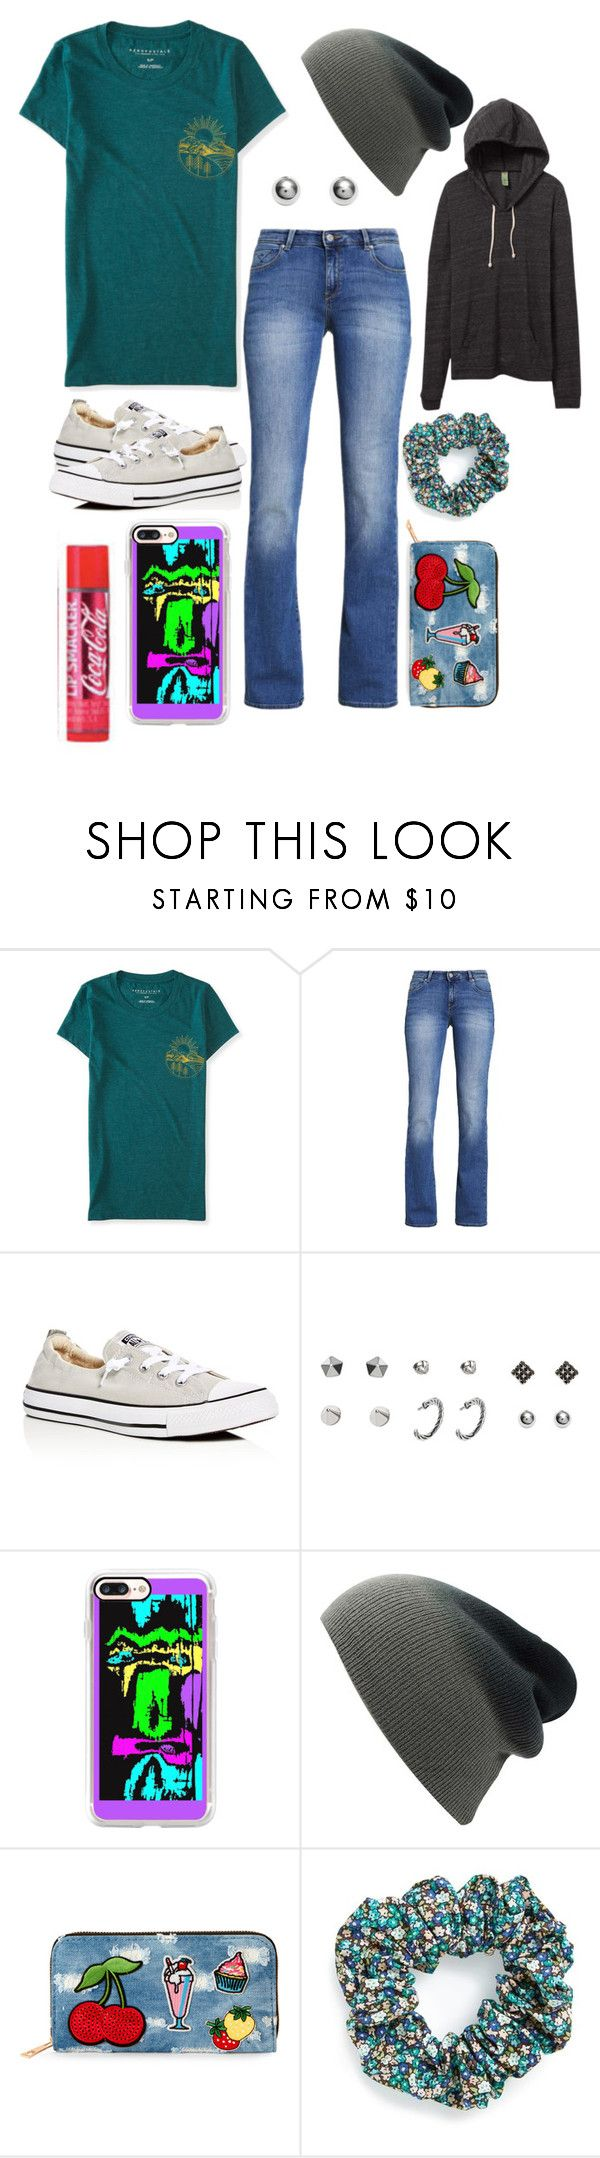 """Untitled #226"" by skylovessave ❤ liked on Polyvore featuring Aéropostale, ESPRIT, Converse, Casetify, Viola and L. Erickson"